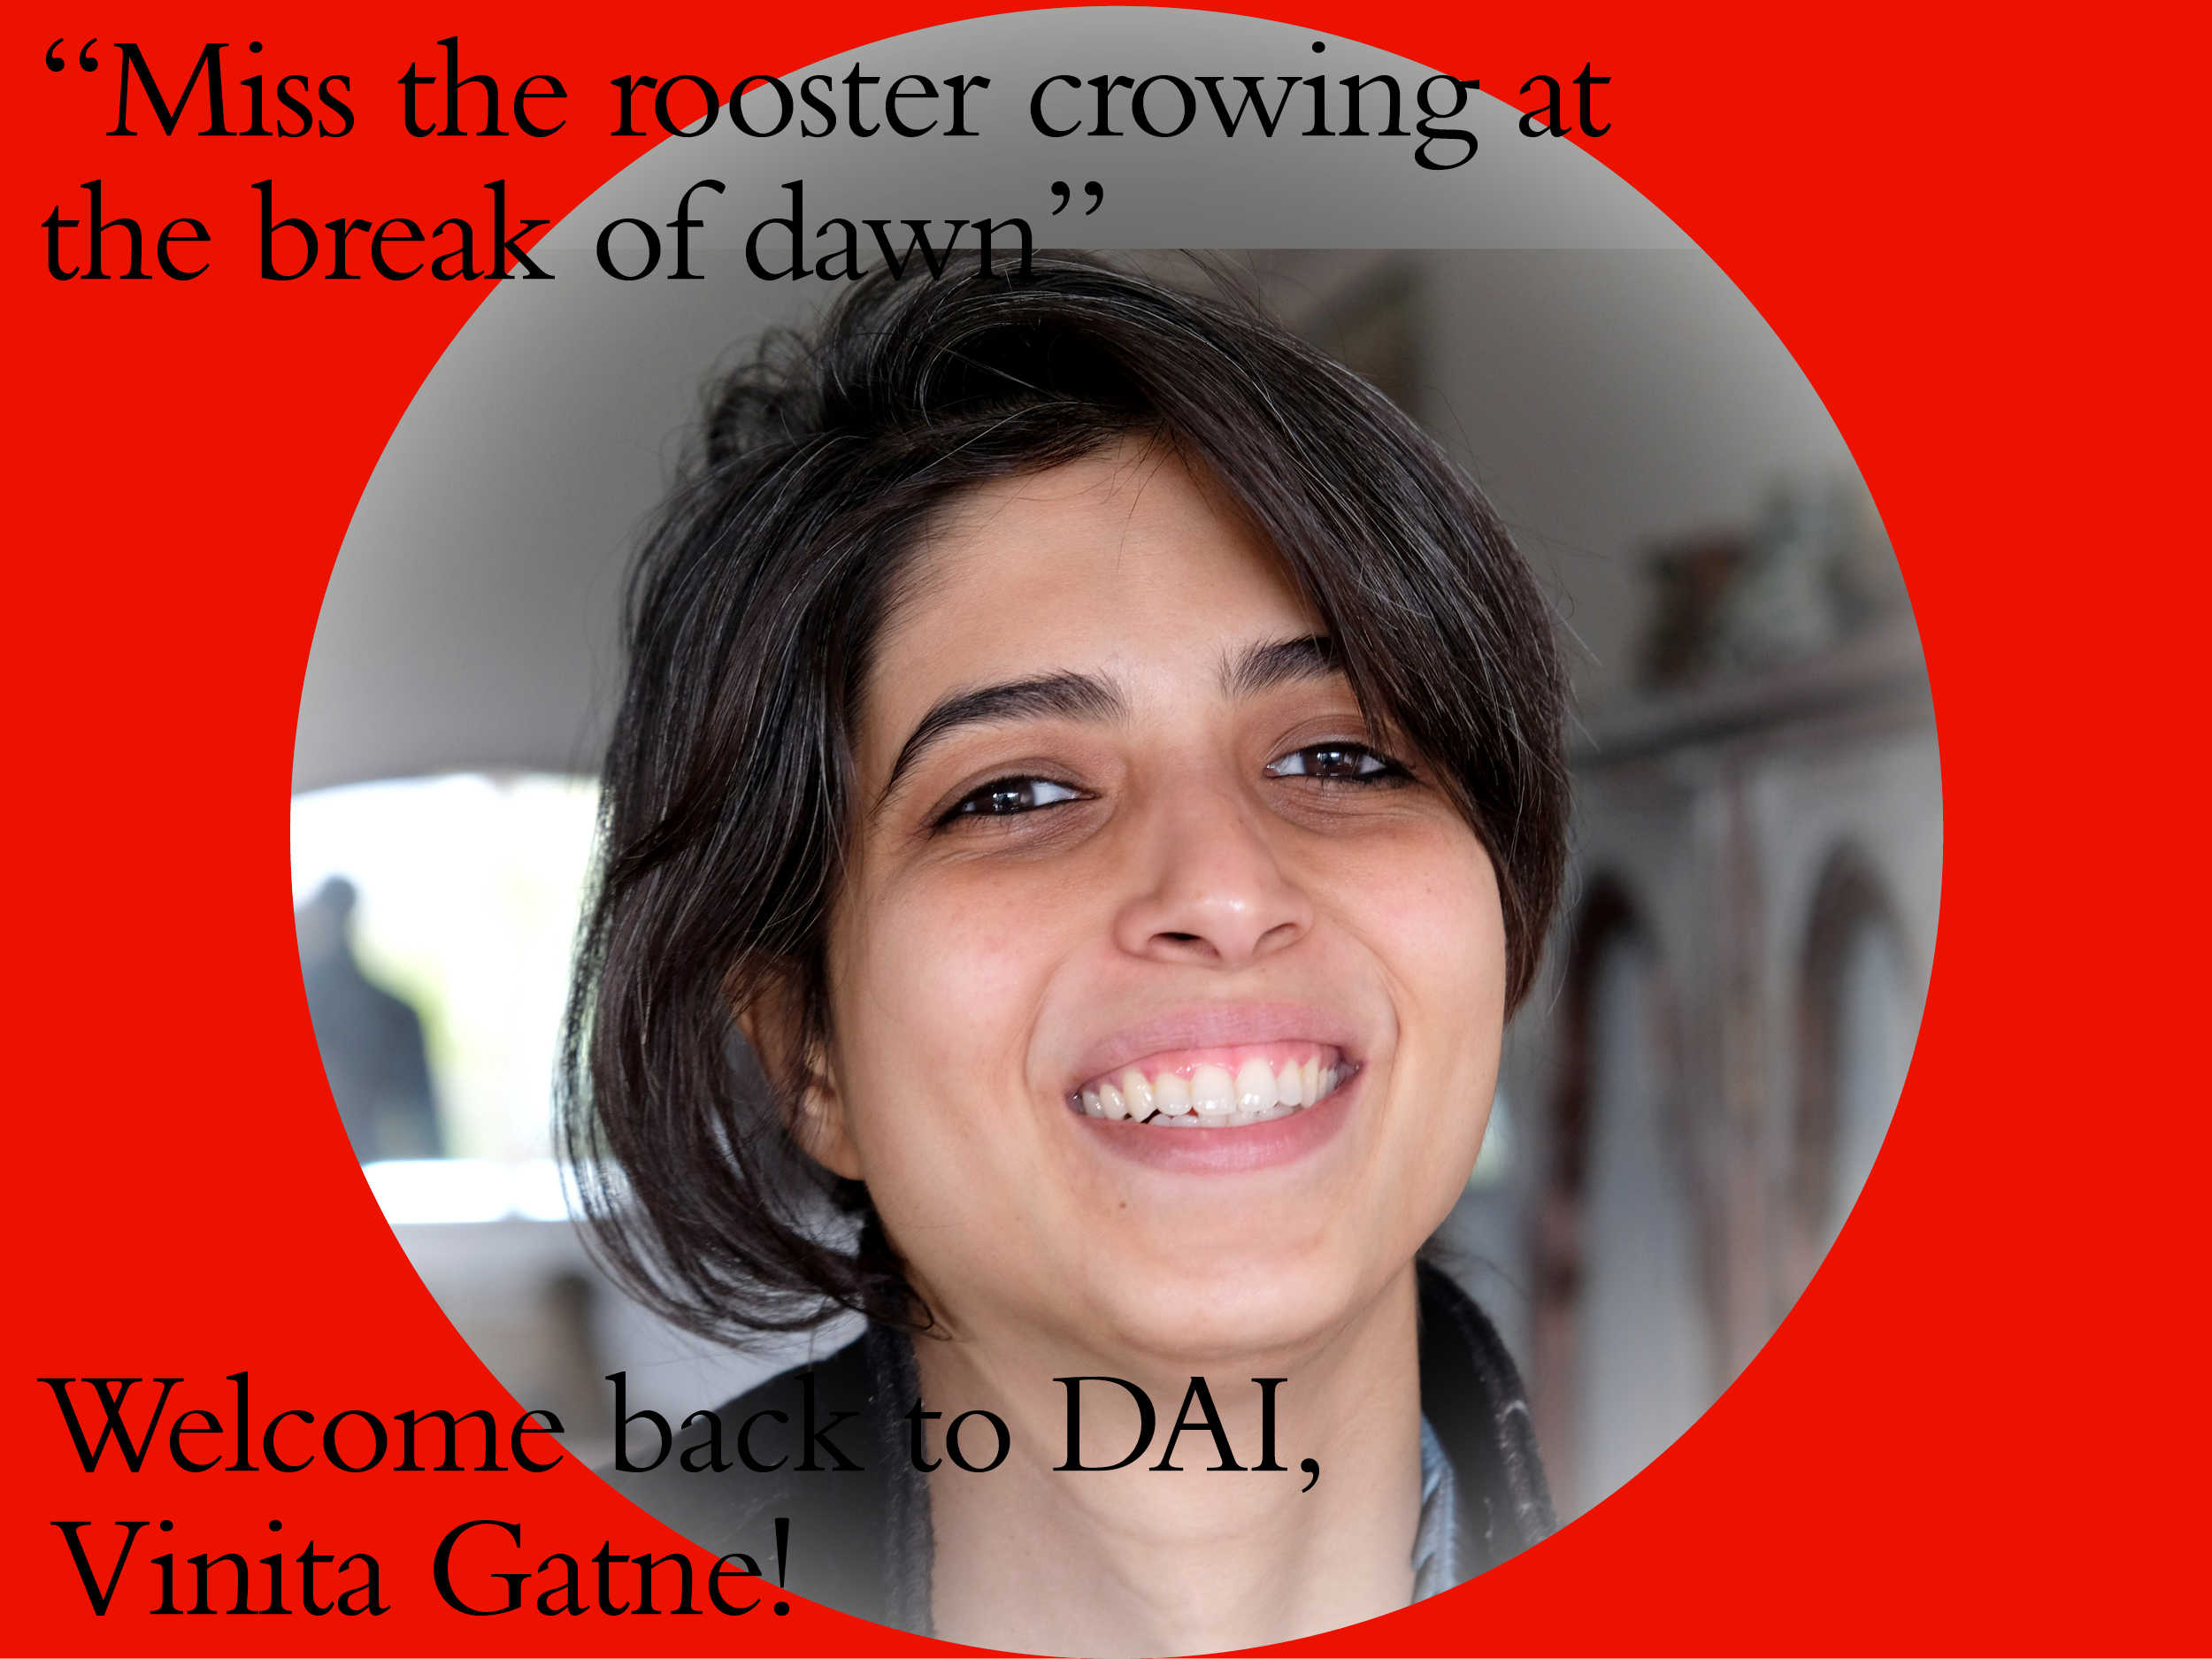 DAI welcomes back Vinita Gatne - Kitchen, 27th June